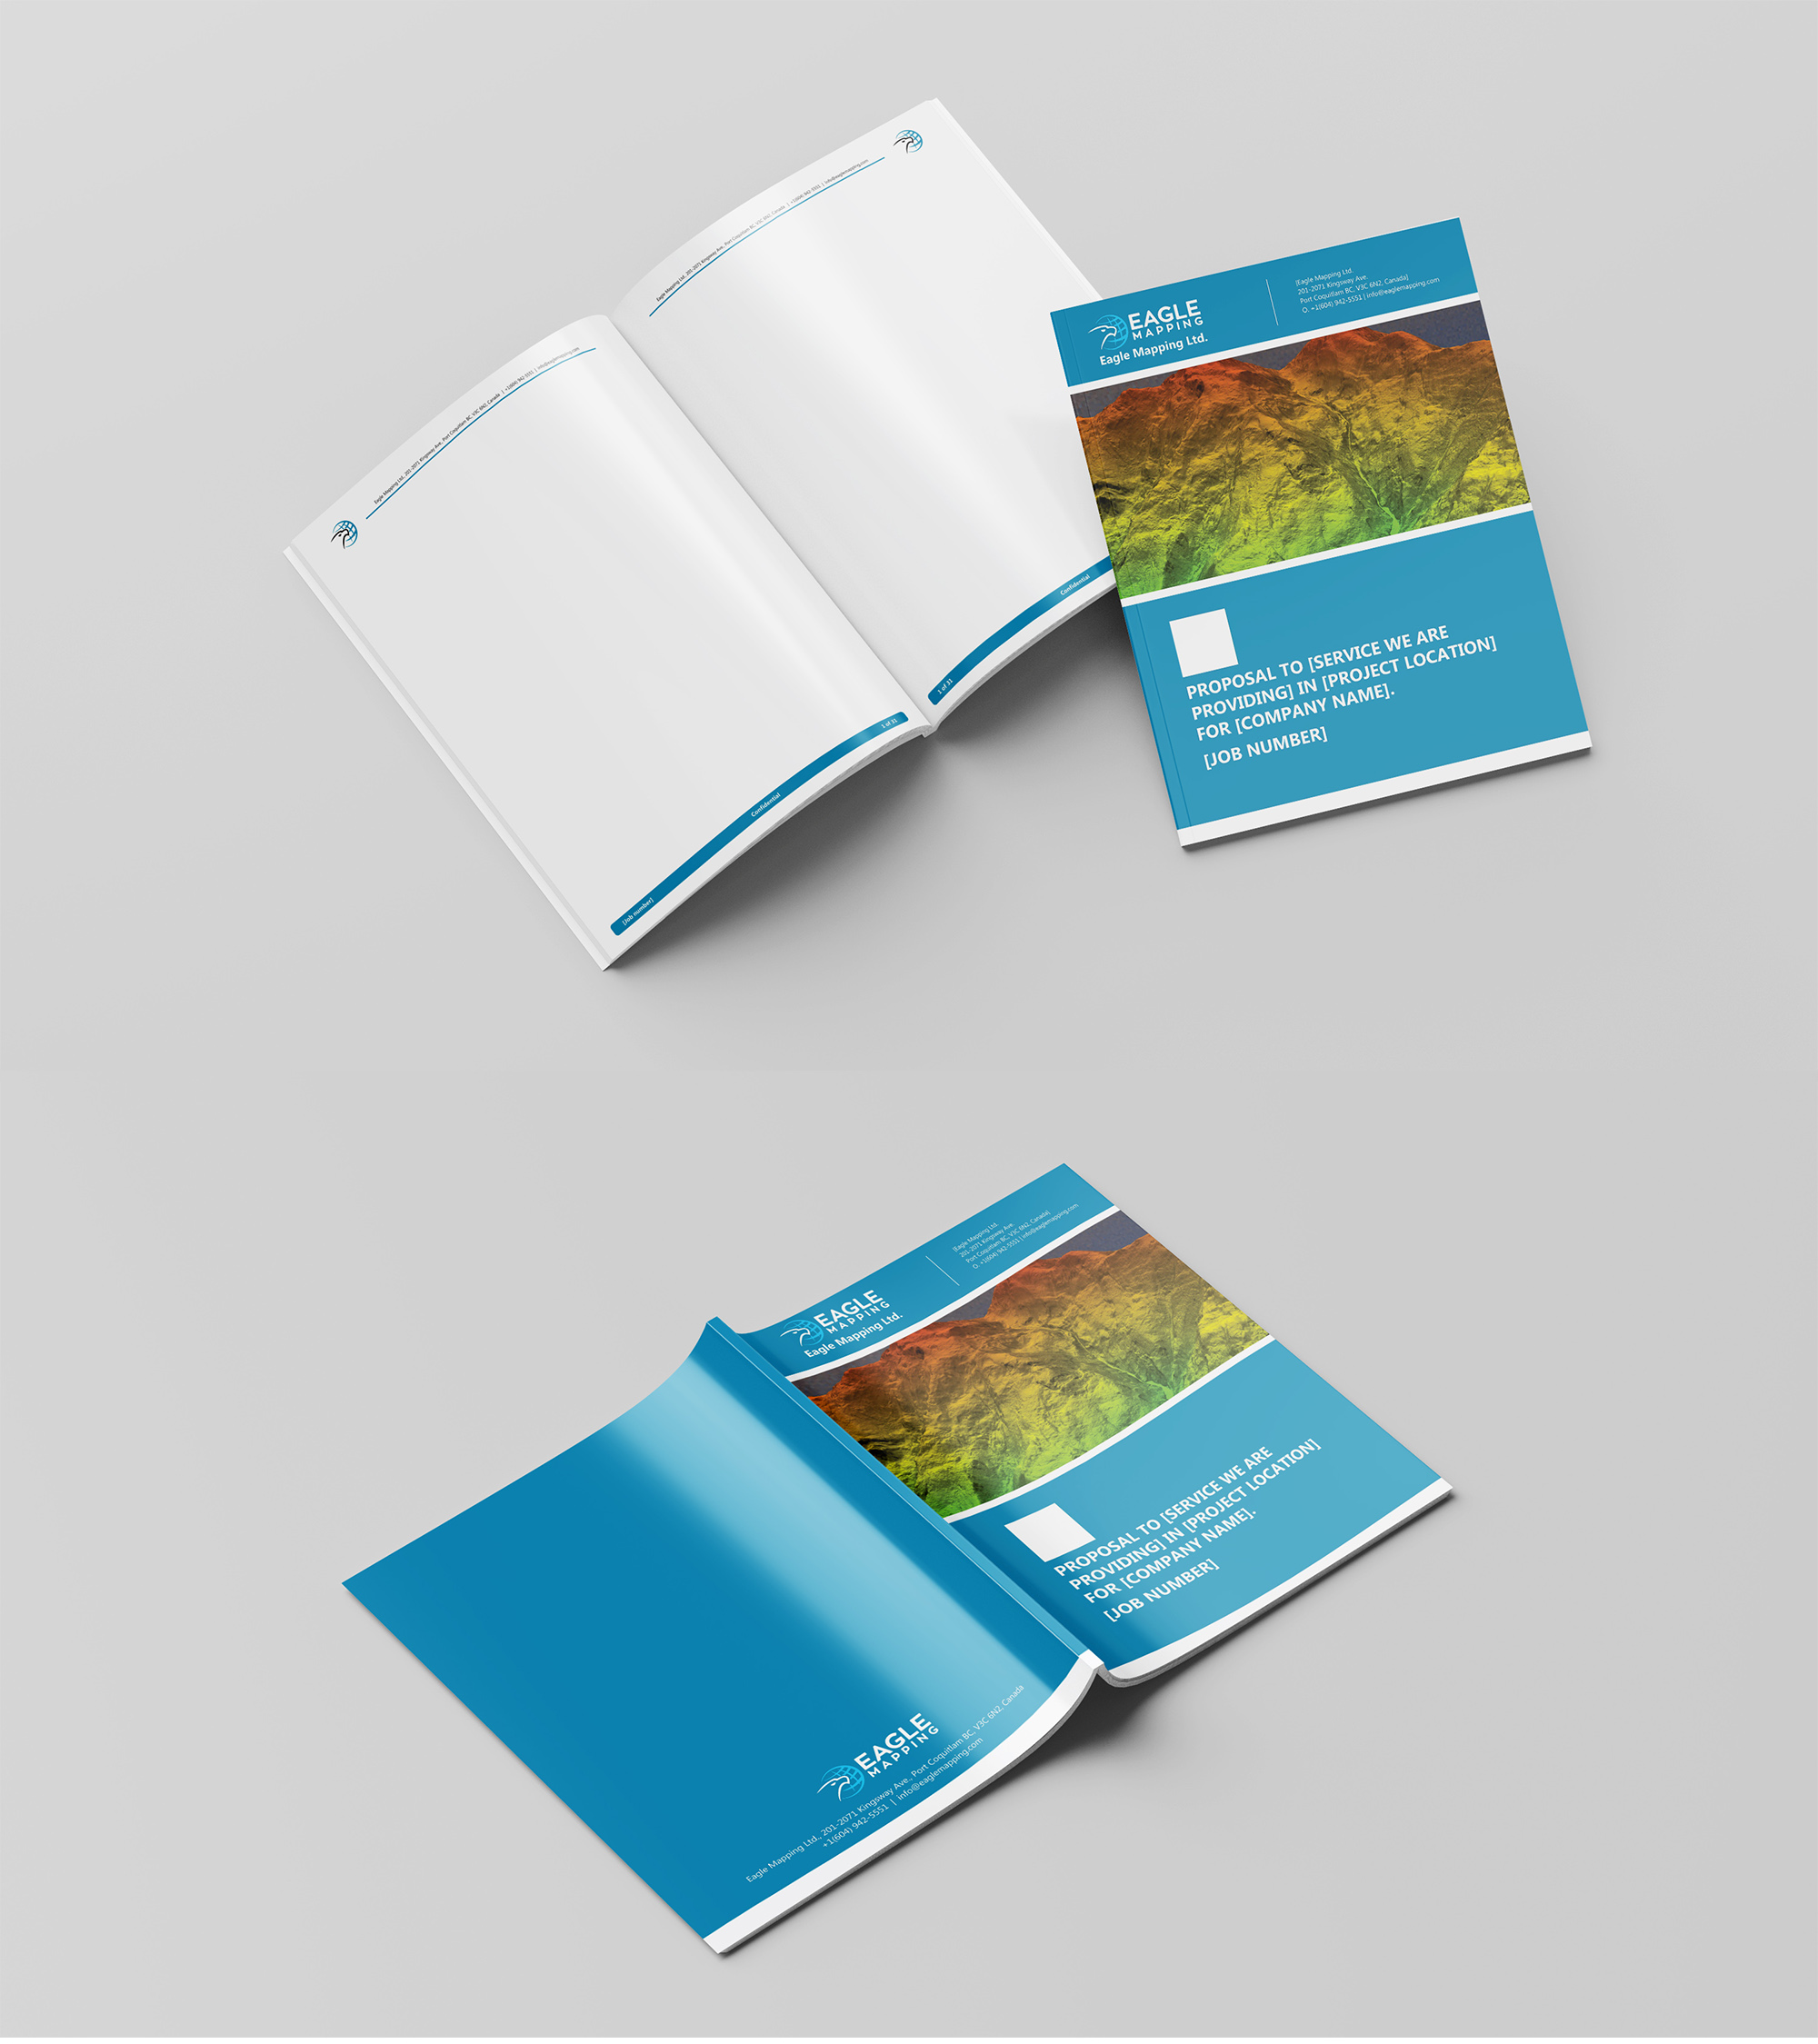 Professional Modern Word Template Design Job Word Template Brief For Eagle Mapping Ltd A Company In Canada